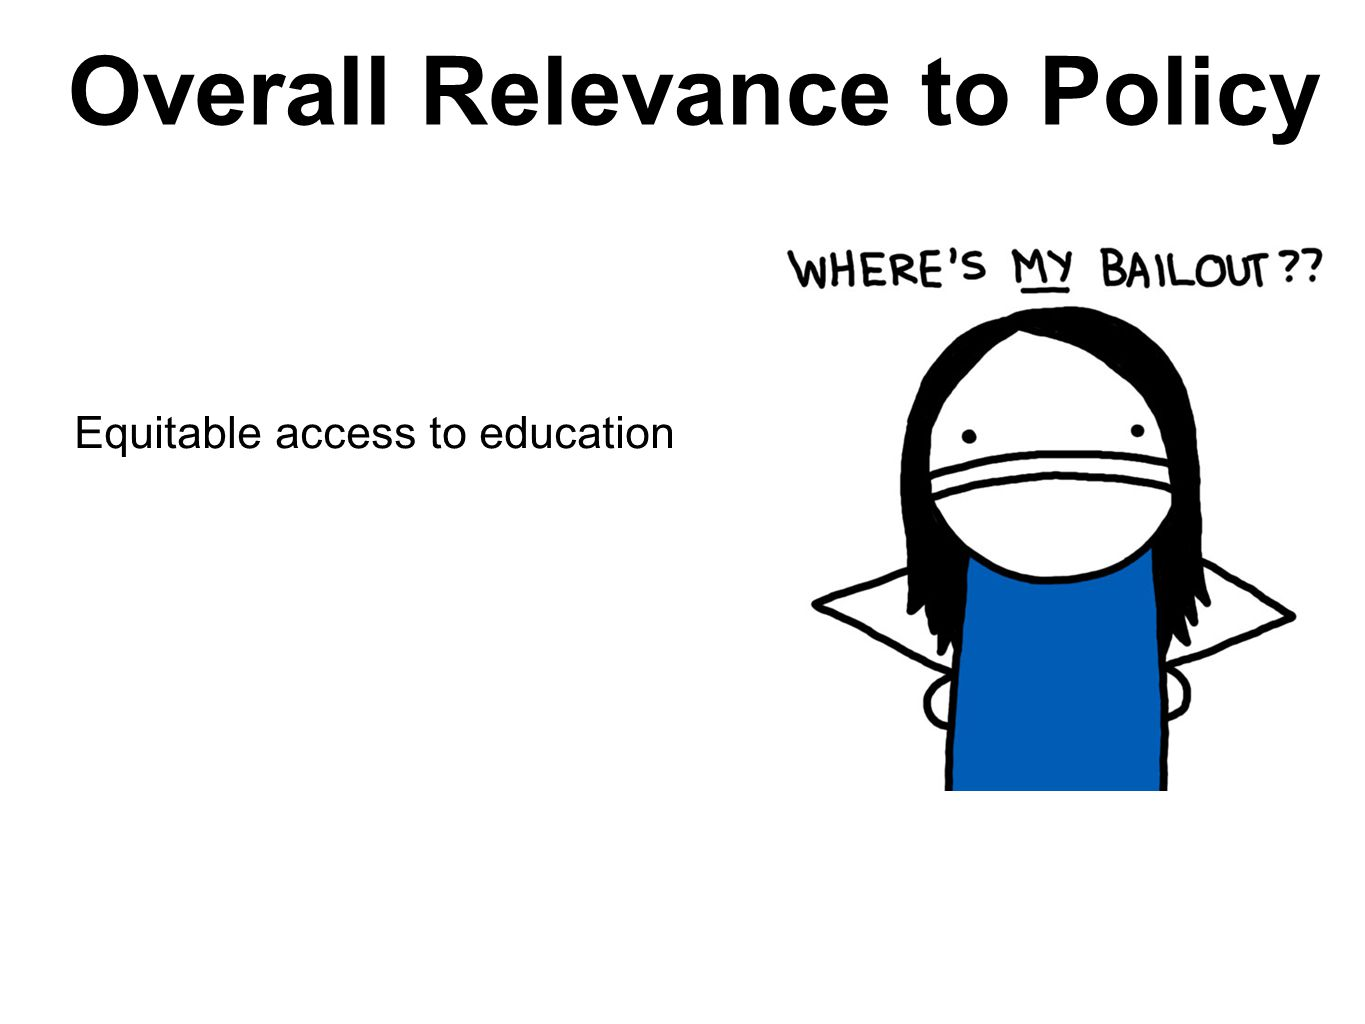 Overall Relevance to Policy